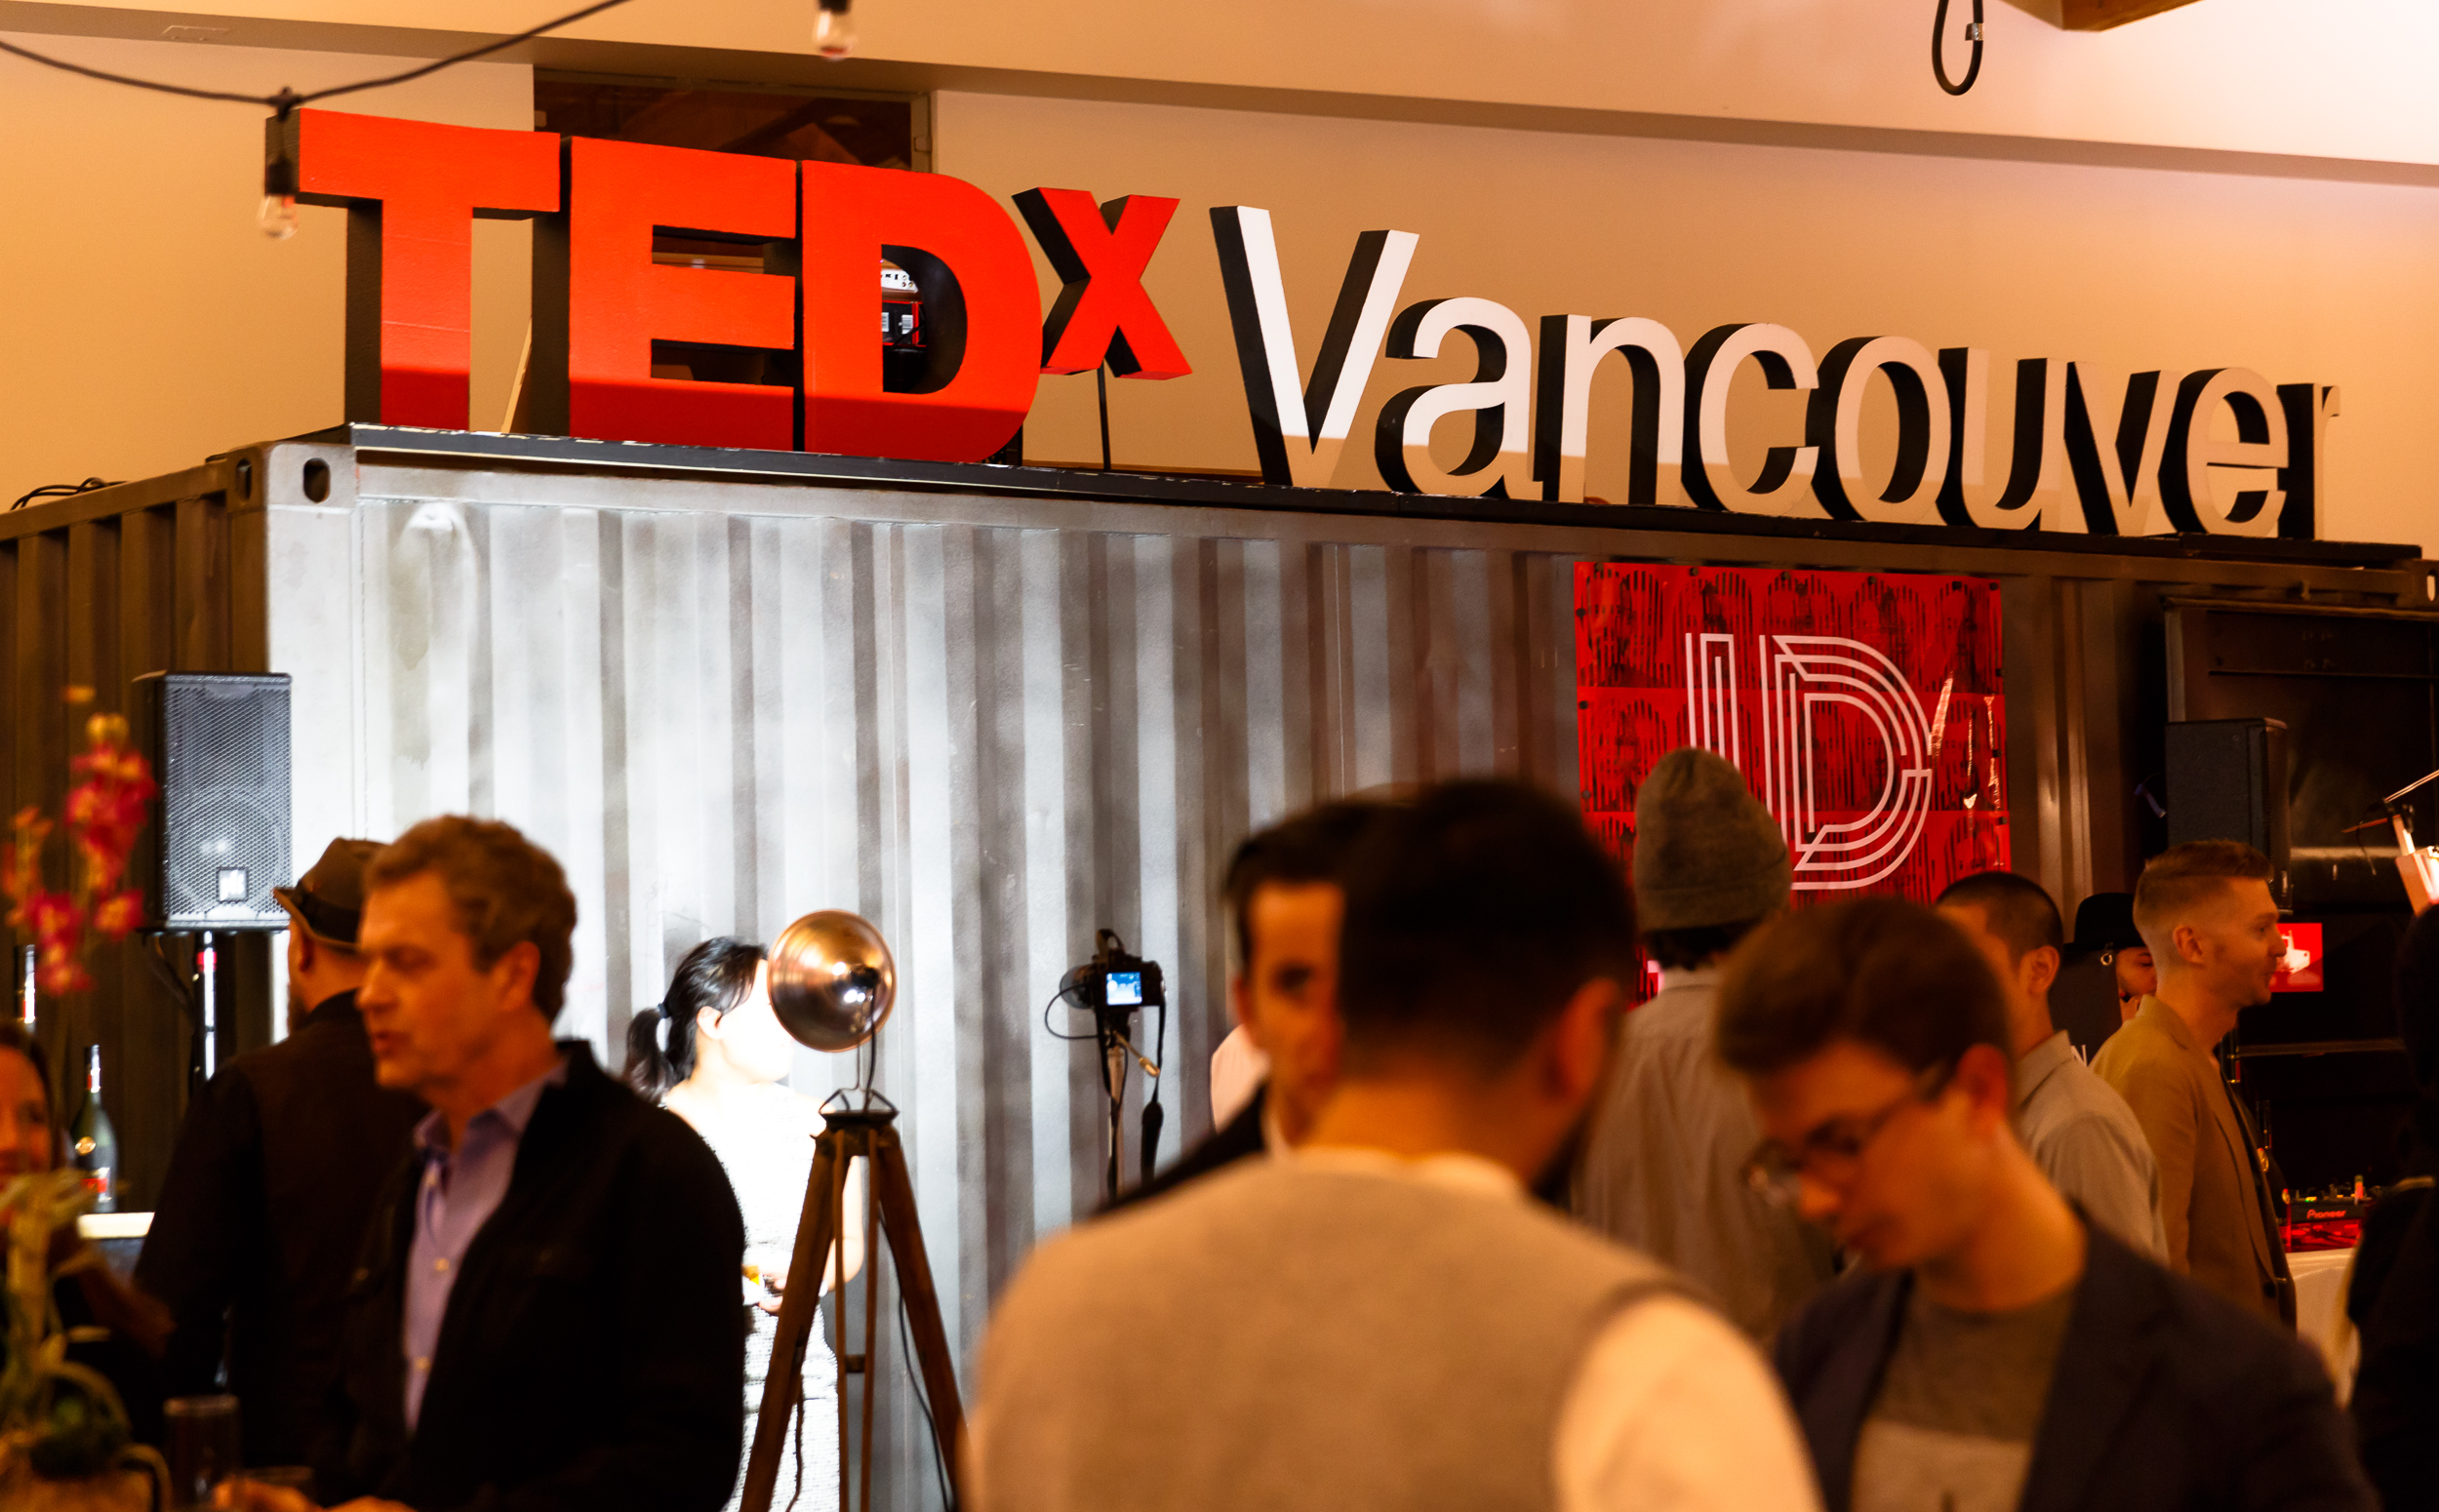 TED-Art-Vancouver-image15.jpg